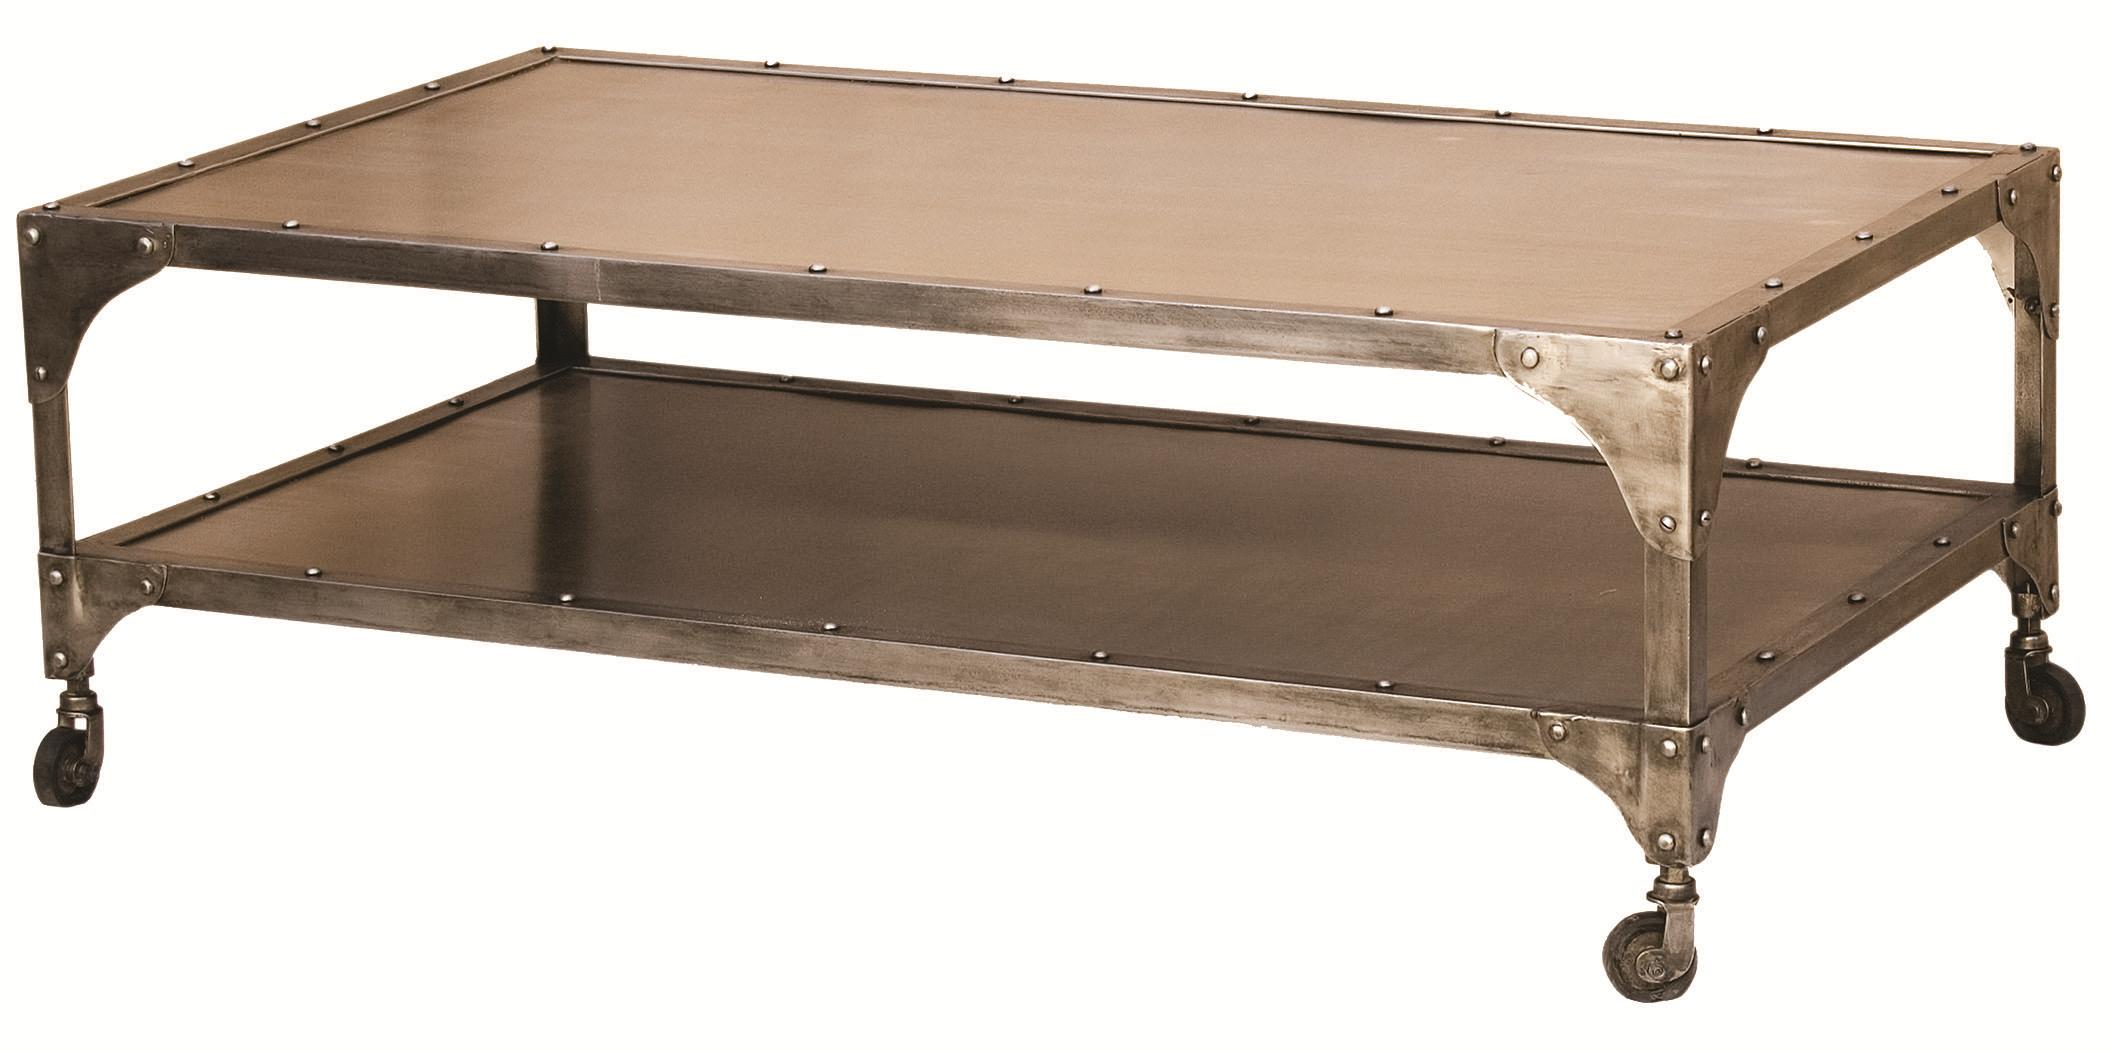 Four Hands Element Coffee Table - Item Number: IELE-49-NKLANT